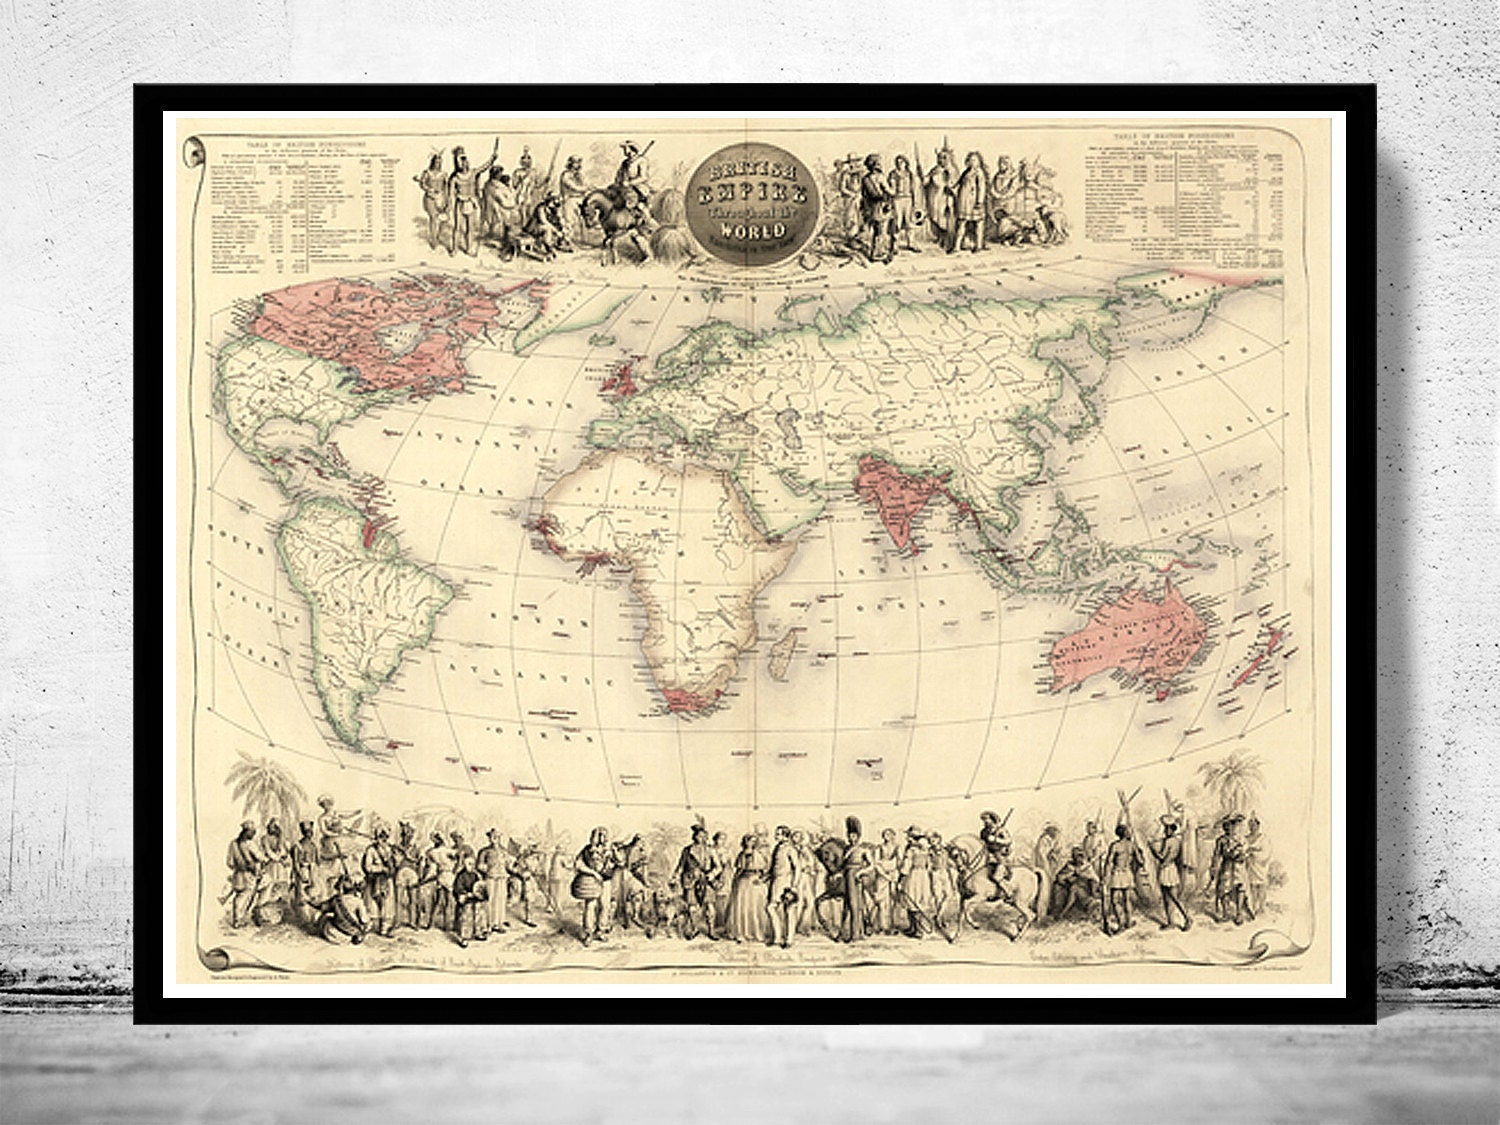 vintage world atlas related - photo #8